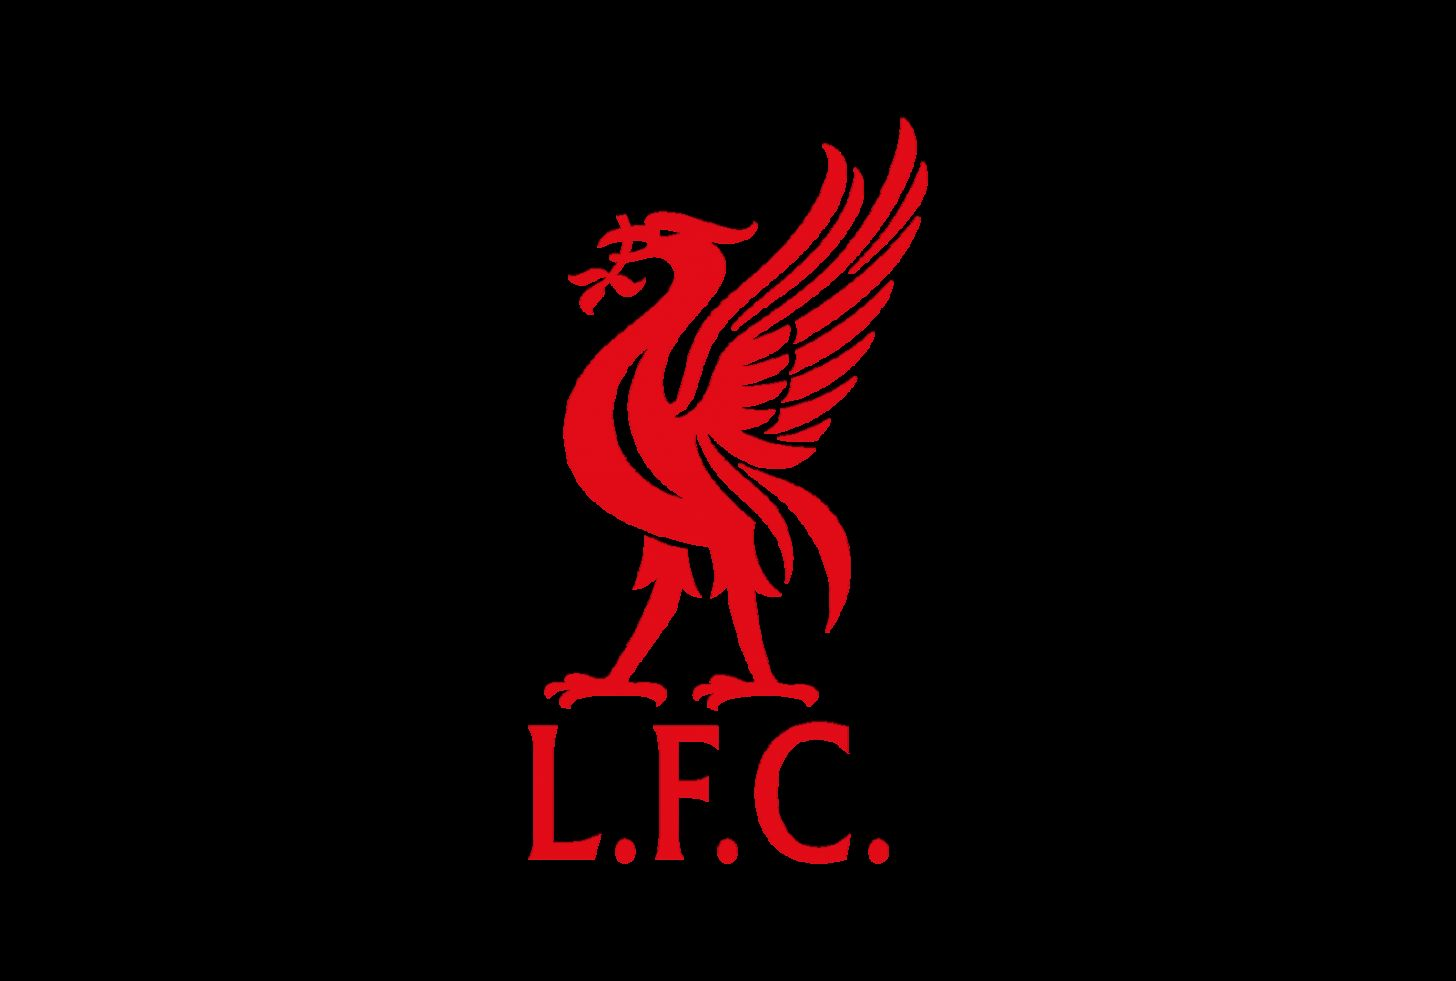 liverpool fc logo wallpaper hd - alternative clipart design •